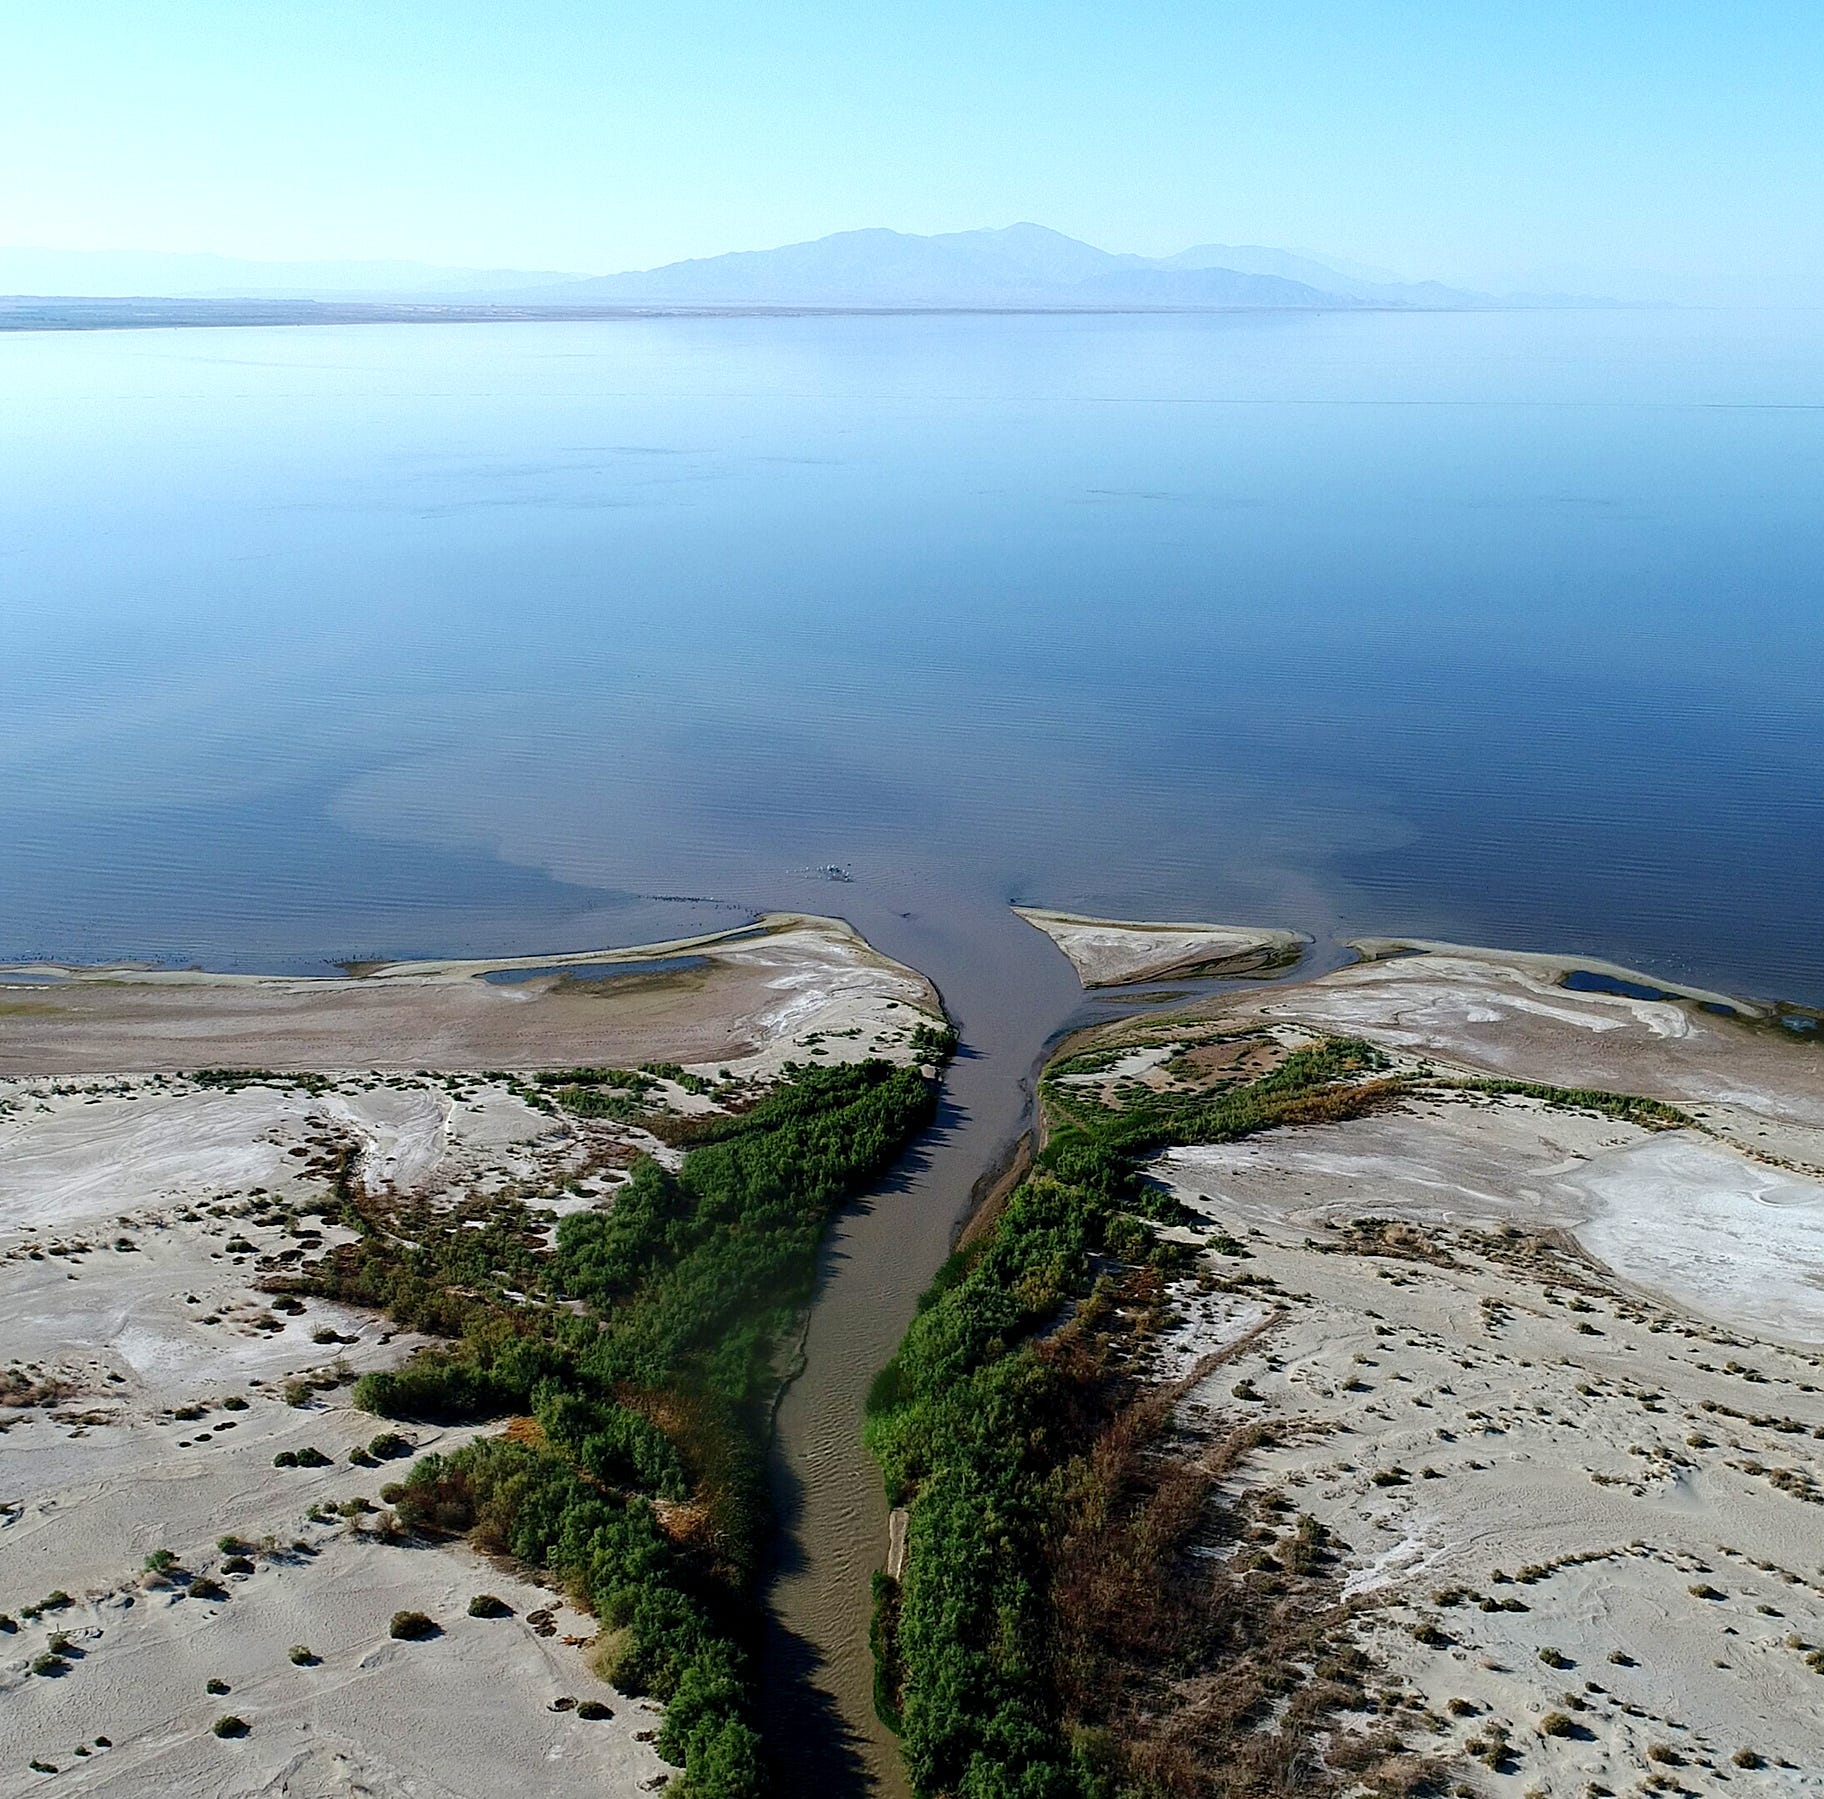 Desert Sun investigative series on polluted border illustrates facet of Salton Sea problem